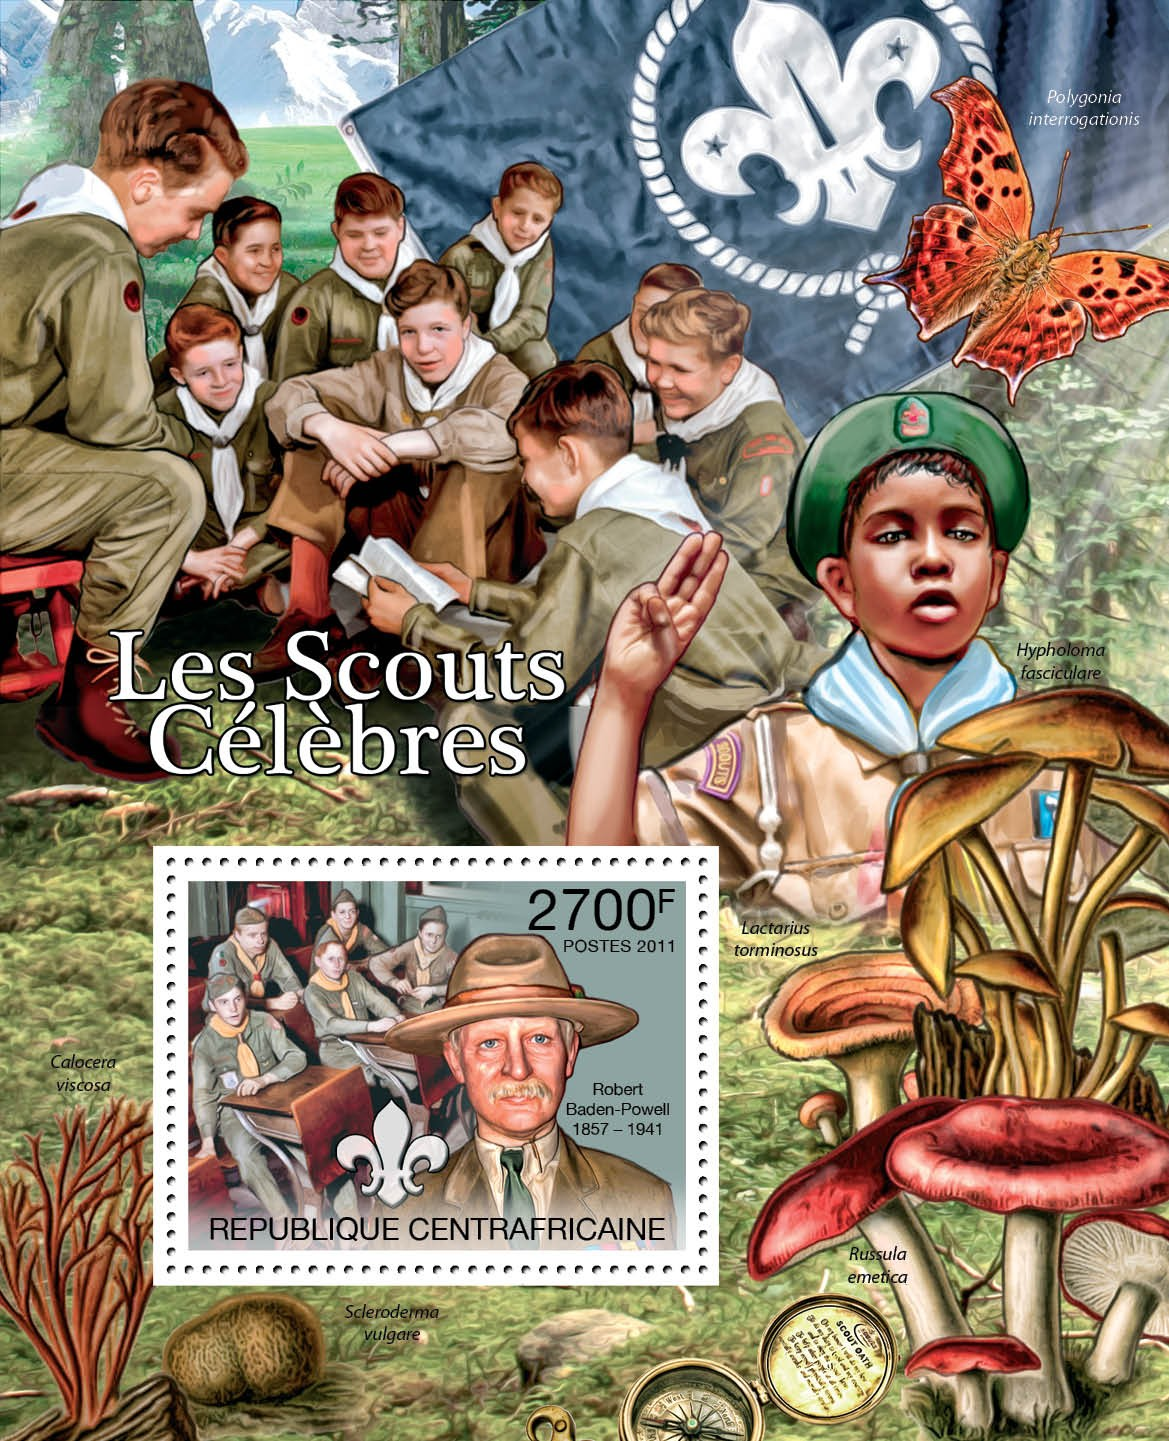 Famous Scouts, (Robert Baden-Powell). - Issue of Central African republic postage stamps